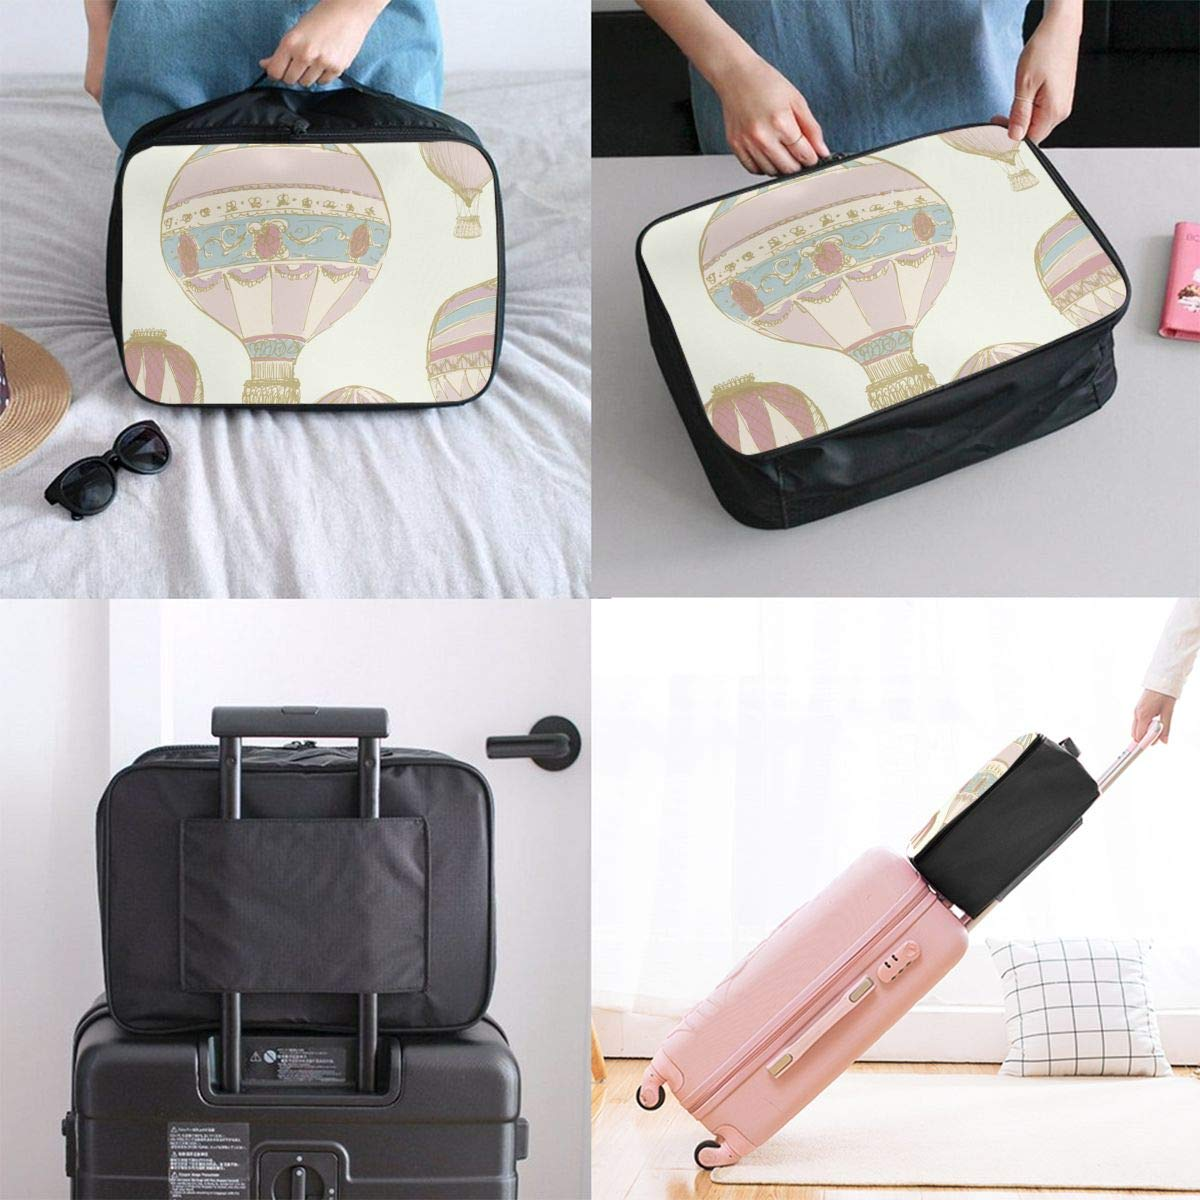 Travel Luggage Duffle Bag Lightweight Portable Handbag Hot Air Balloons Large Capacity Waterproof Foldable Storage Tote